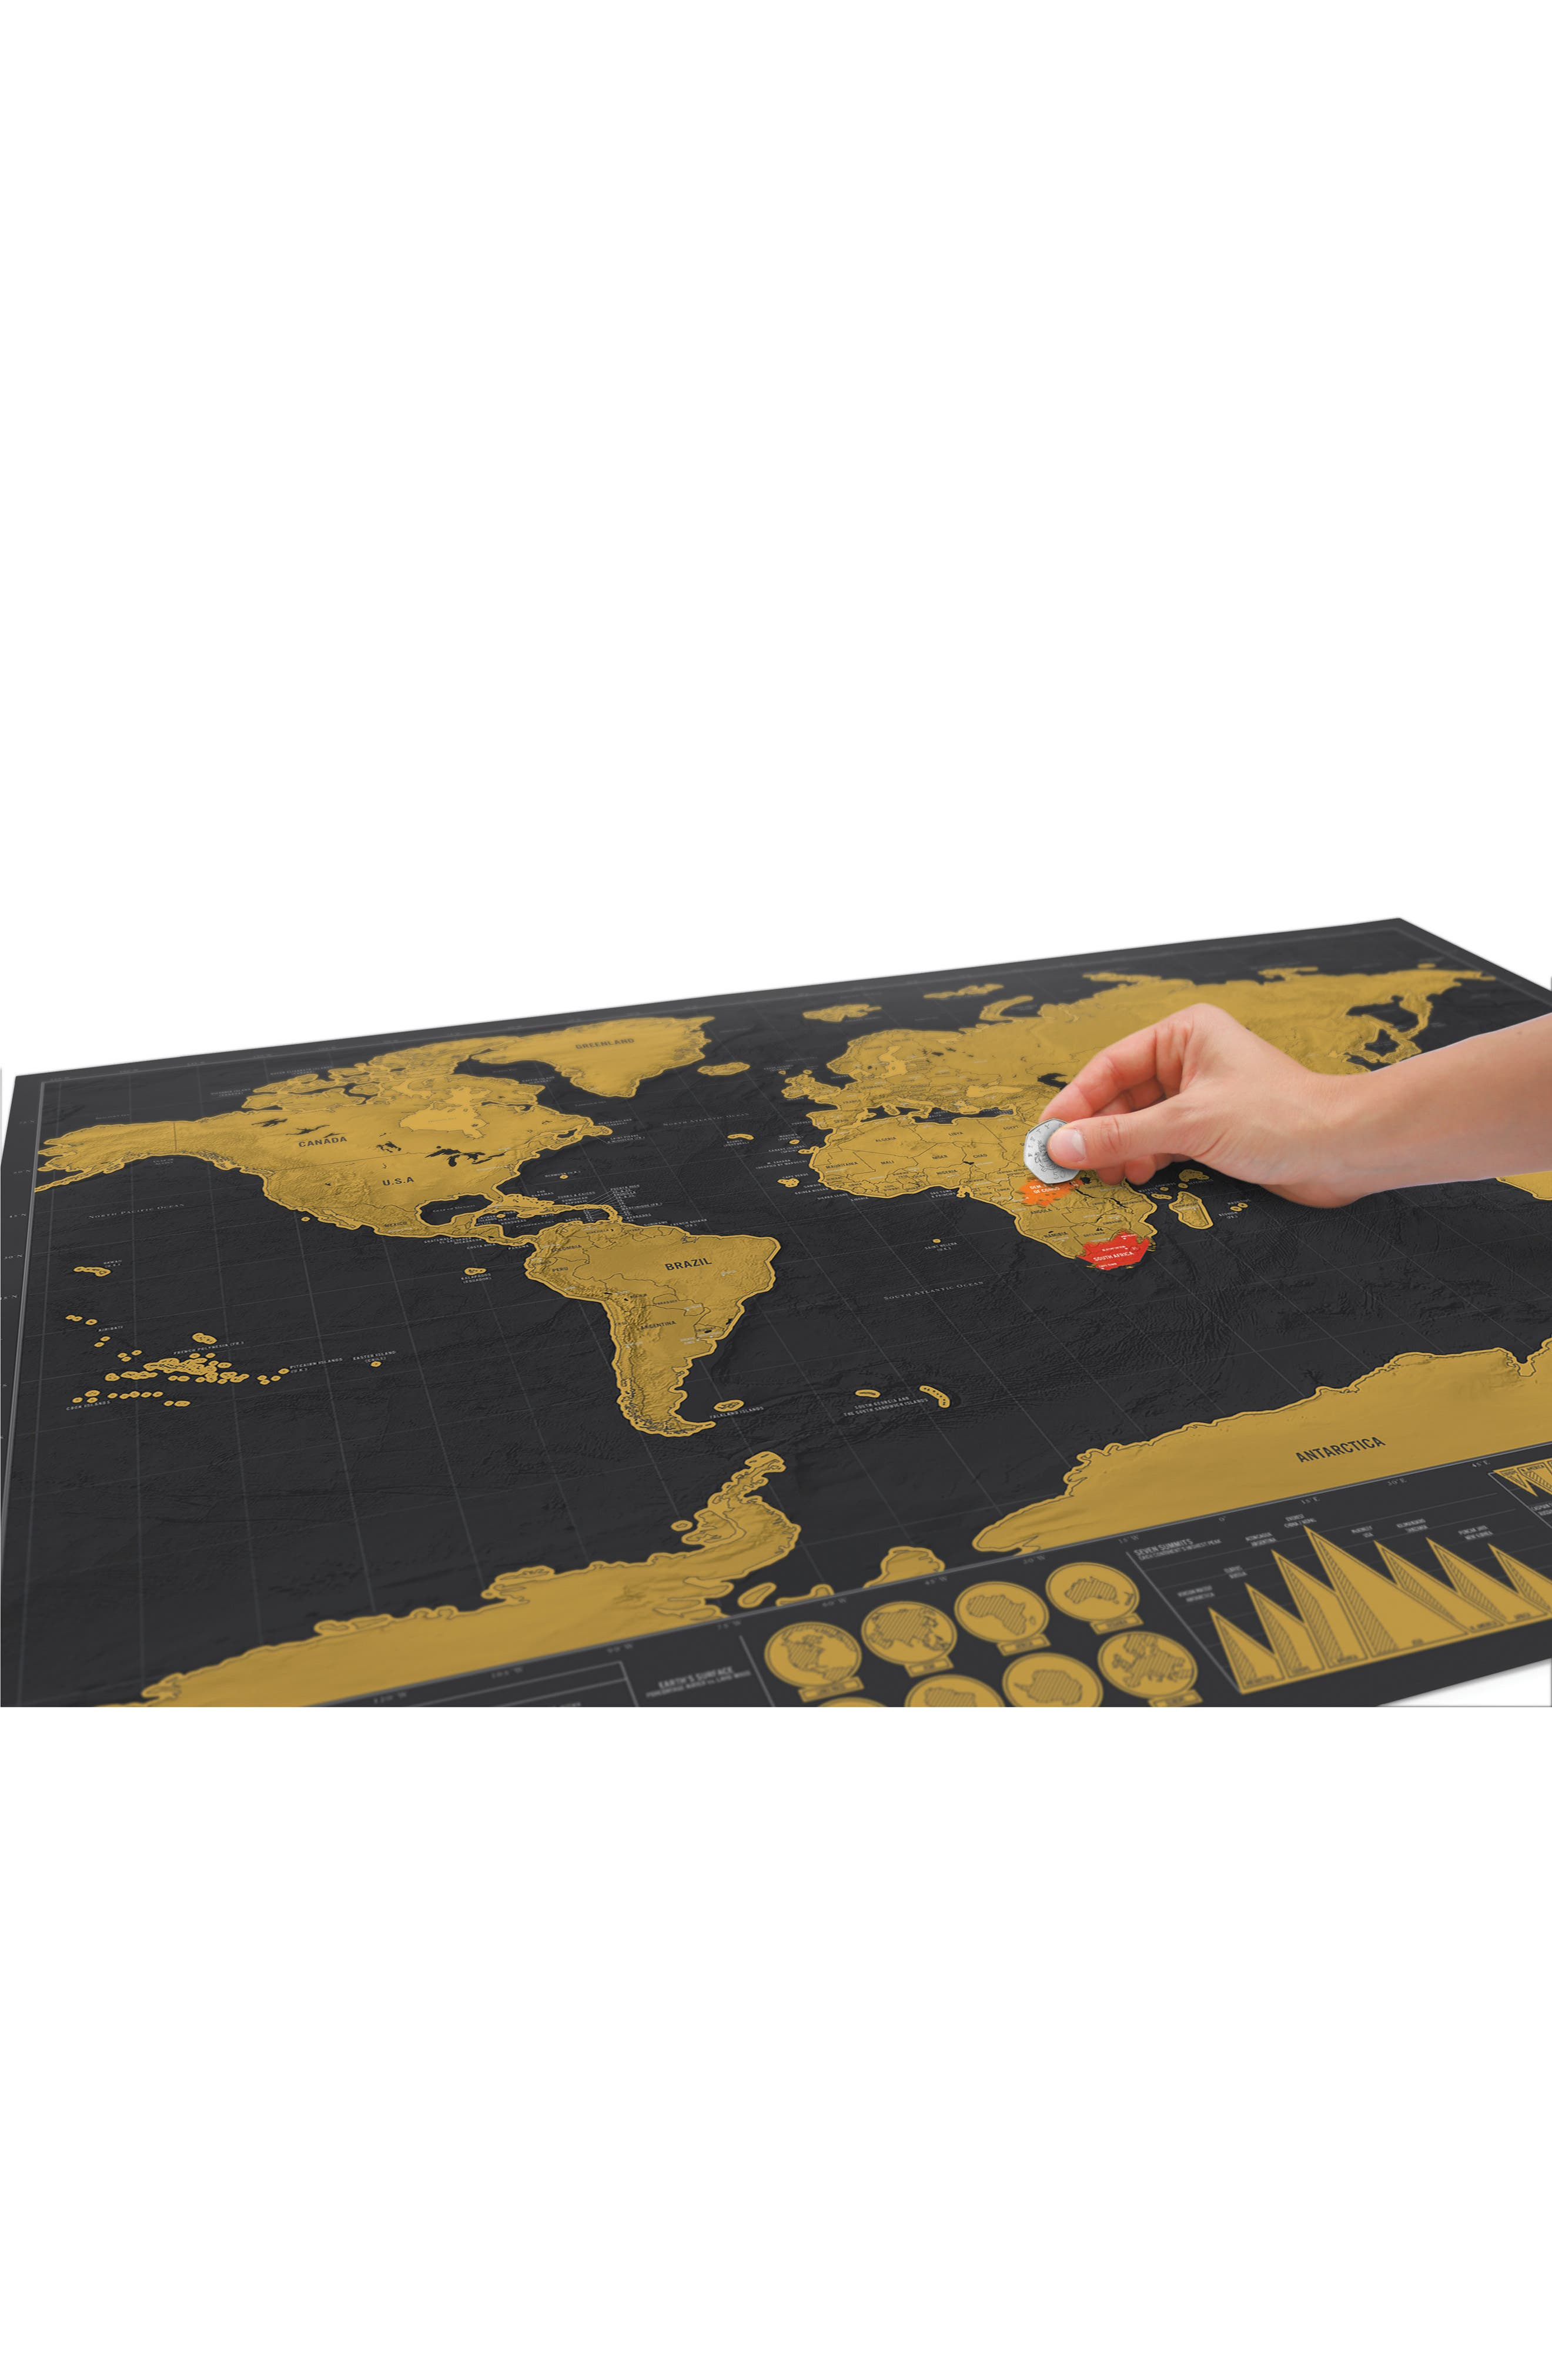 Deluxe Edition Scratch Map<sup>®</sup>,                             Alternate thumbnail 2, color,                             Metallic Gold